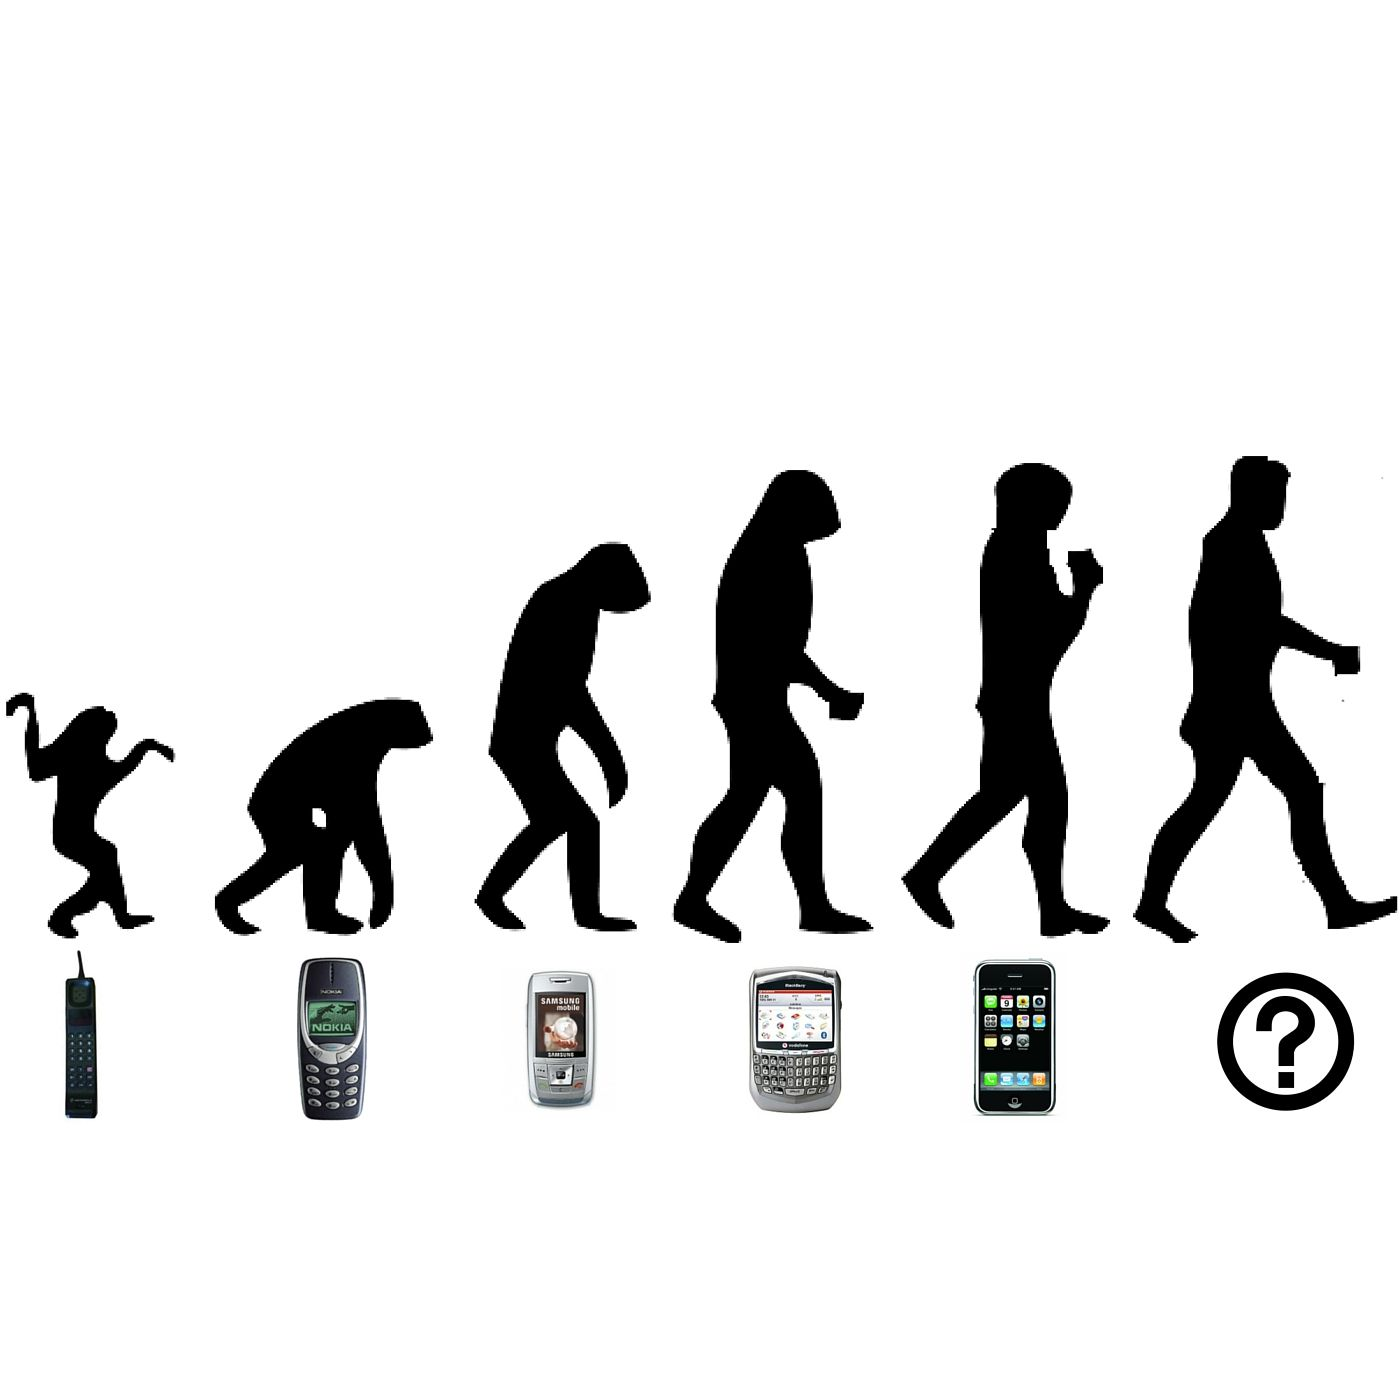 21: Evolution Of Mobile Phones, What's Next?